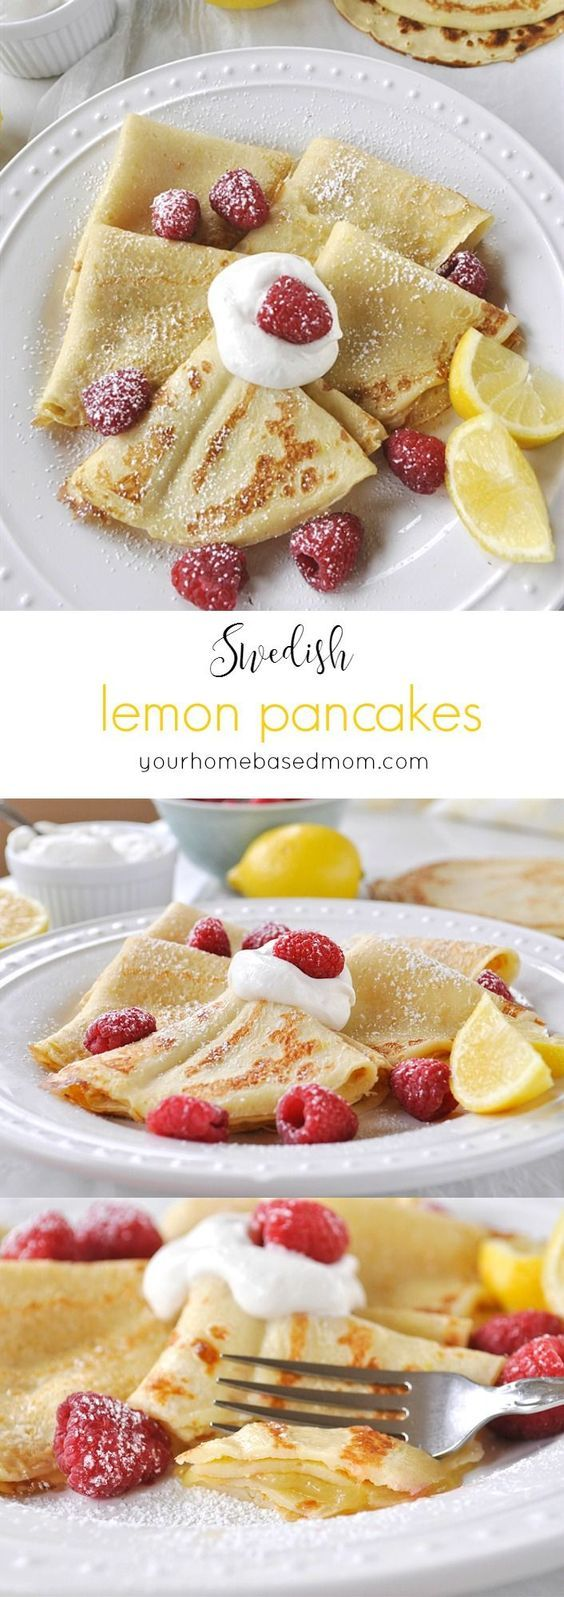 Swedish Lemon Pancakes Recipe via Your Homebased Mom - Surprise your family with this fabulously spring breakfast recipe!